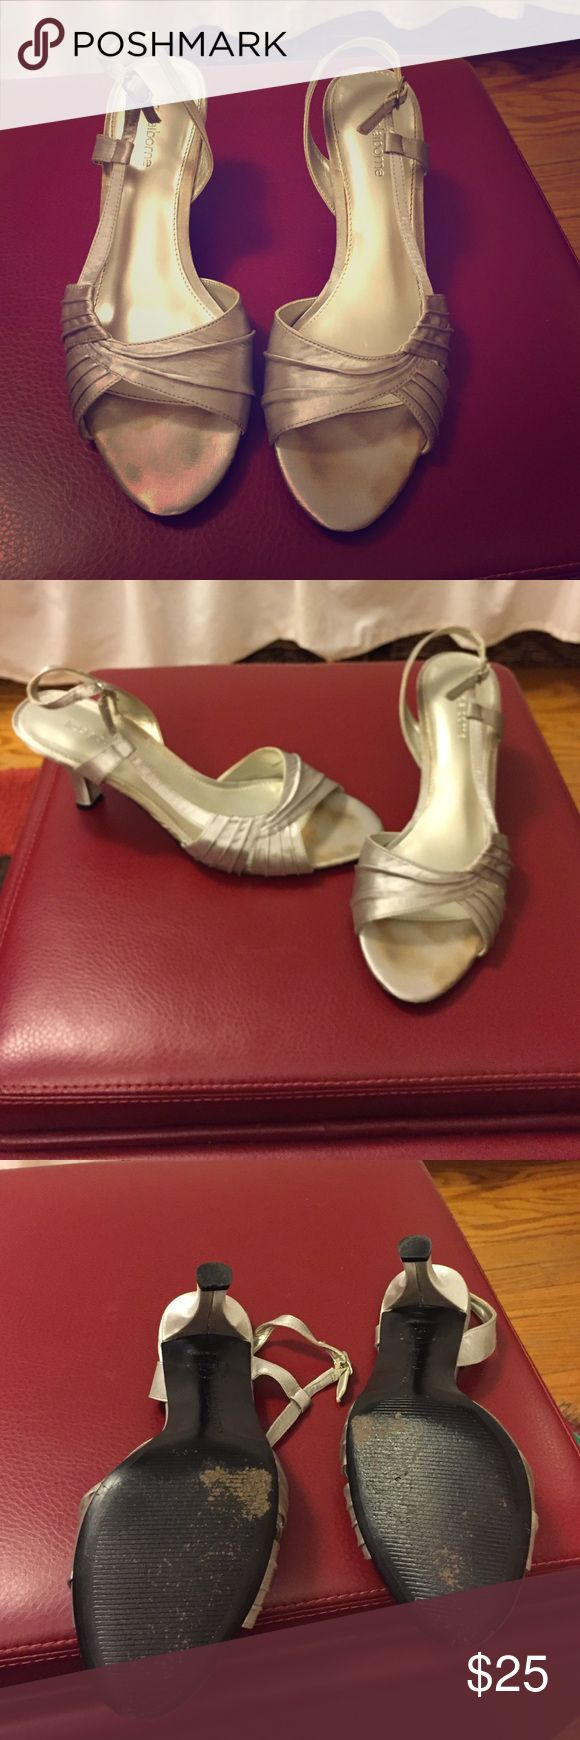 Silver sandals Liz Claiborne Silver satin sandals. Worn once for a wedding.  There are slight stains on the toe area but you can't see them when your feet are in them. Liz Claiborne Shoes Sandals